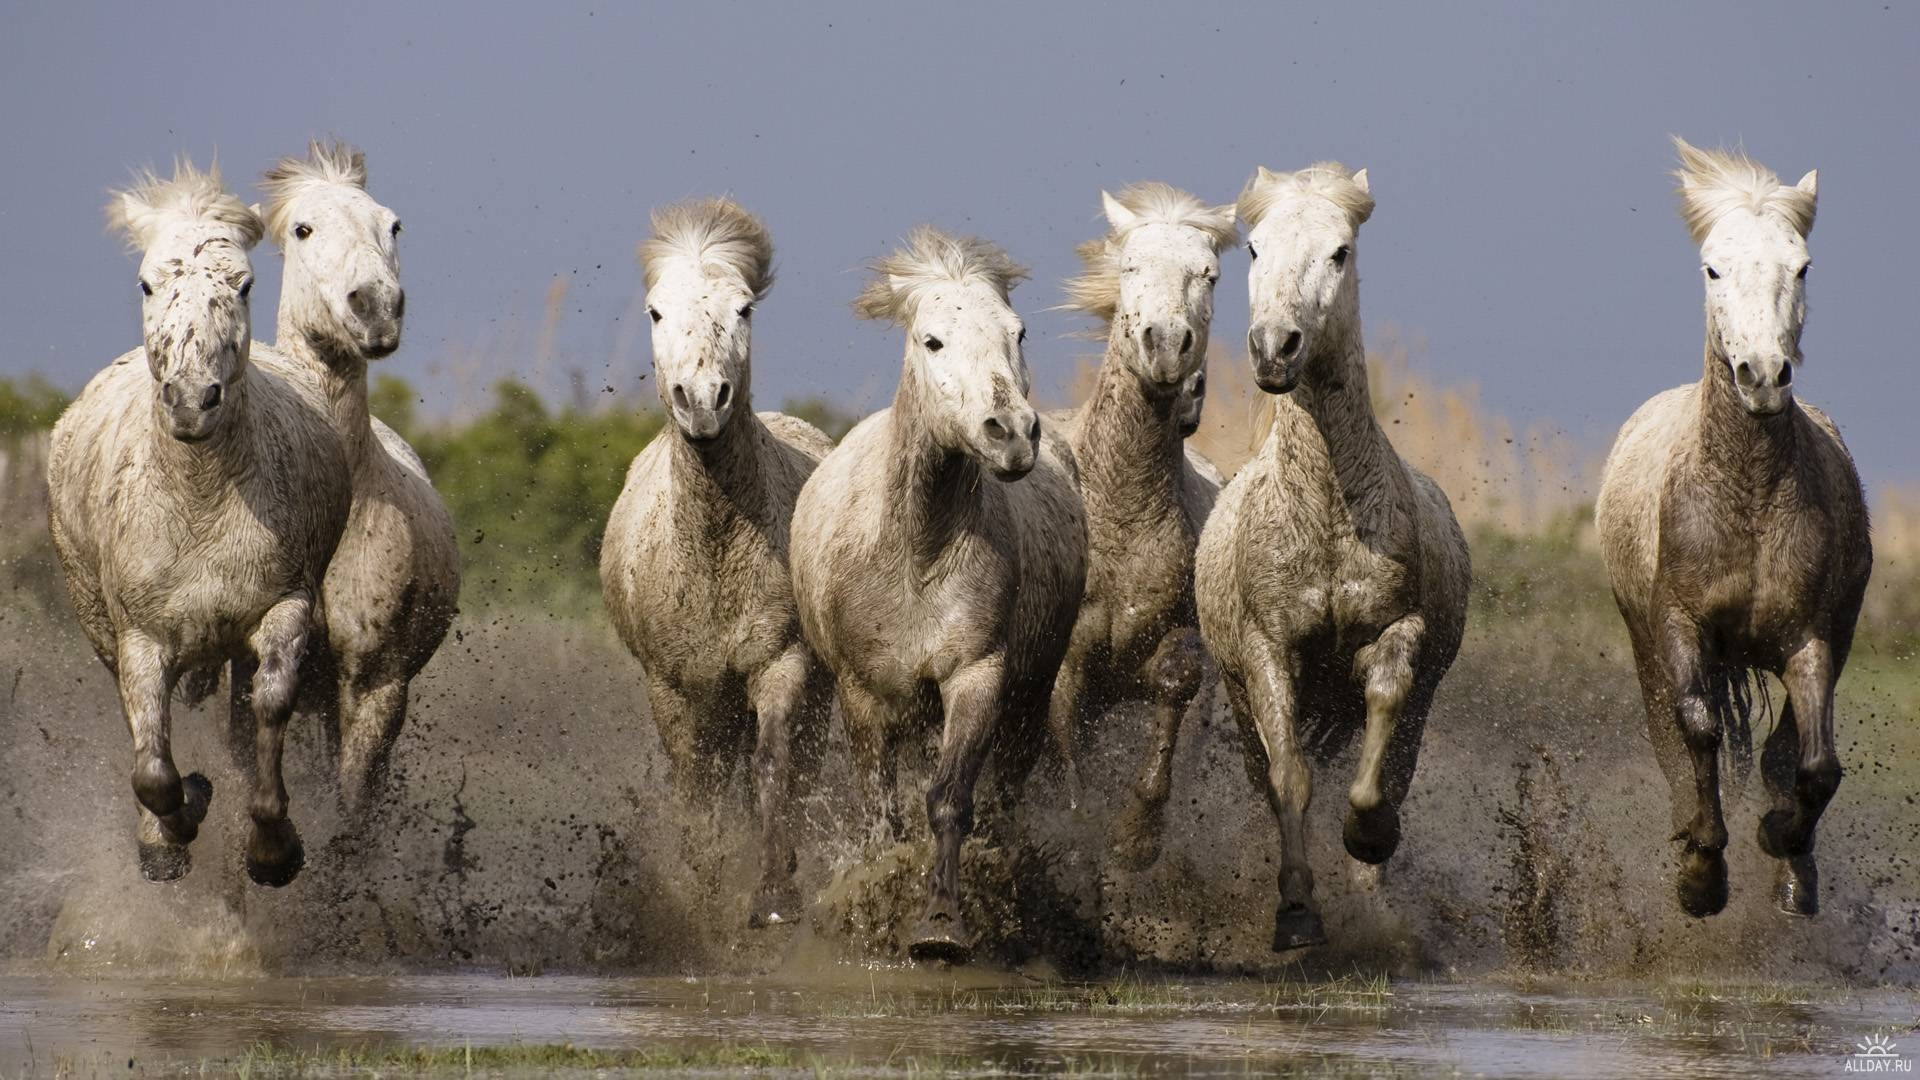 1920x1080 running horses images | Running Horse Wallpapers Unique Nature Hd Wallpapers  Design  .